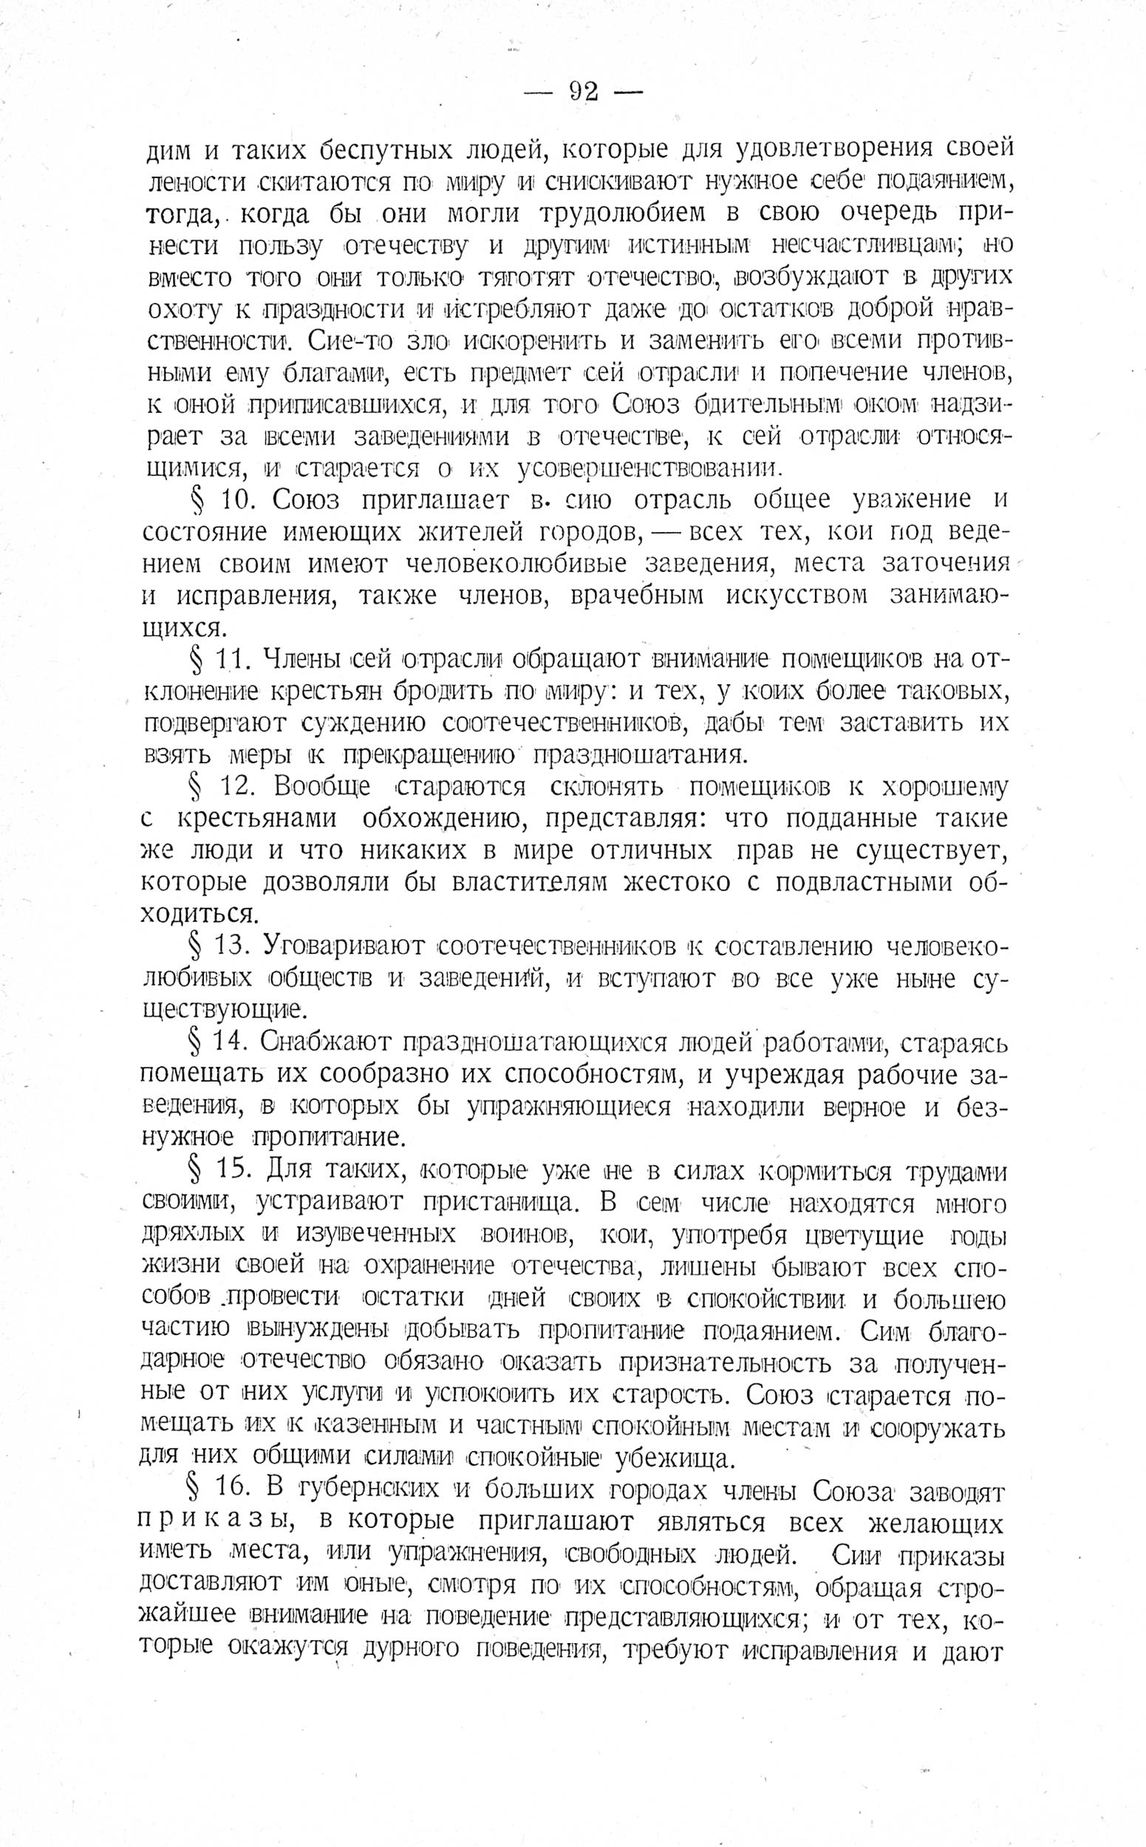 http://elib.shpl.ru/pages/625675/zooms/7